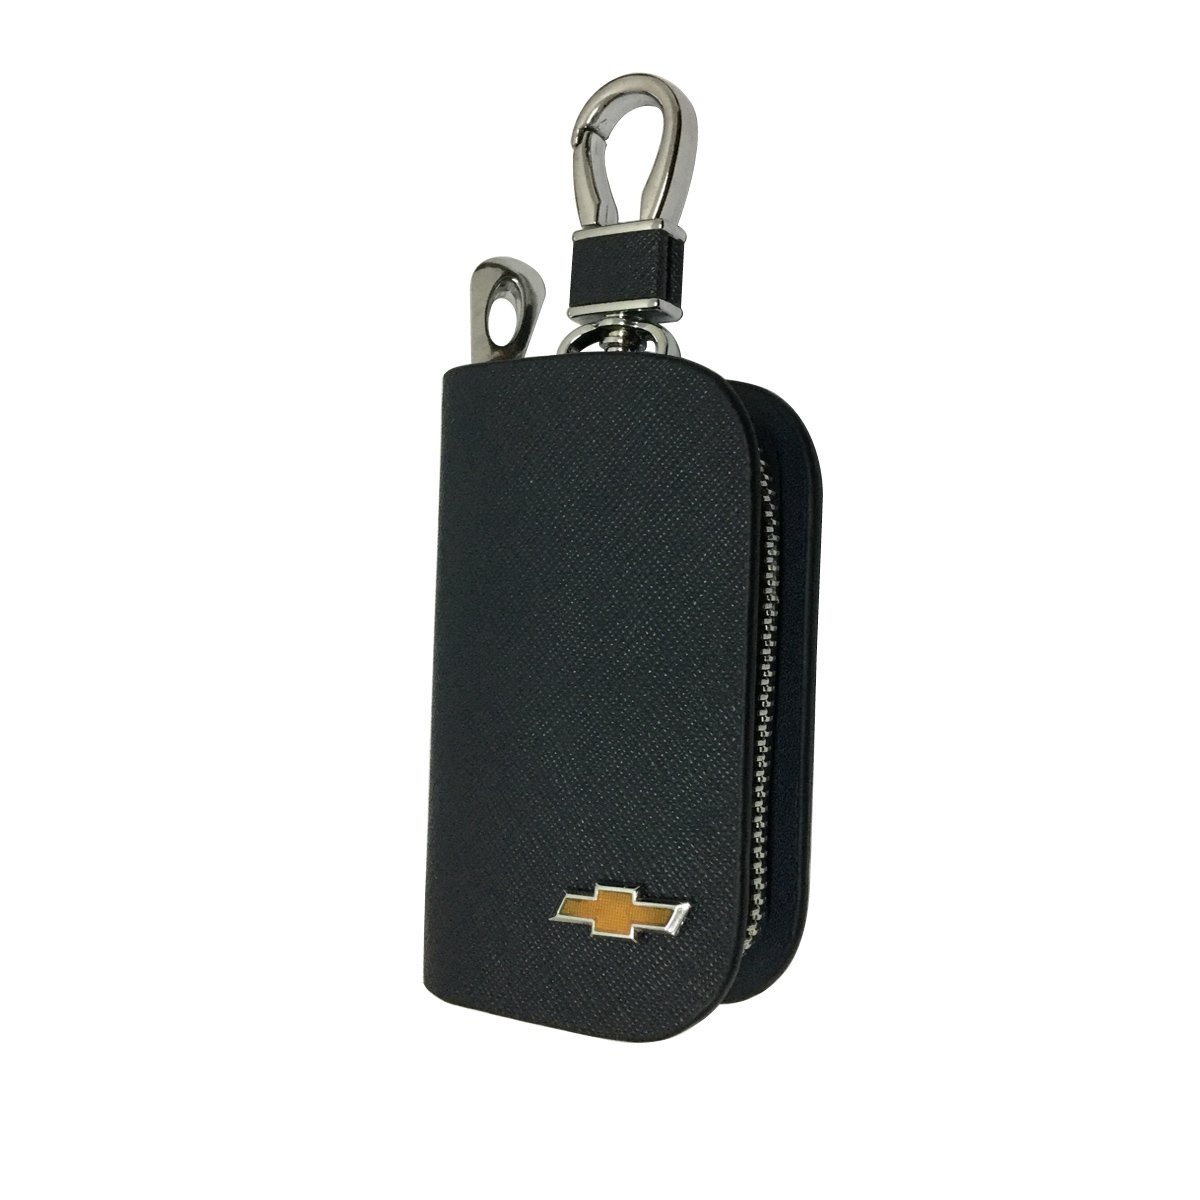 New 1pcs Mesh Black Leather Car Key Wallet Zipper Case Keychain Coin Holder Metal Hook Bag Collection For Chevrolet Car Vehicle Auto Lover